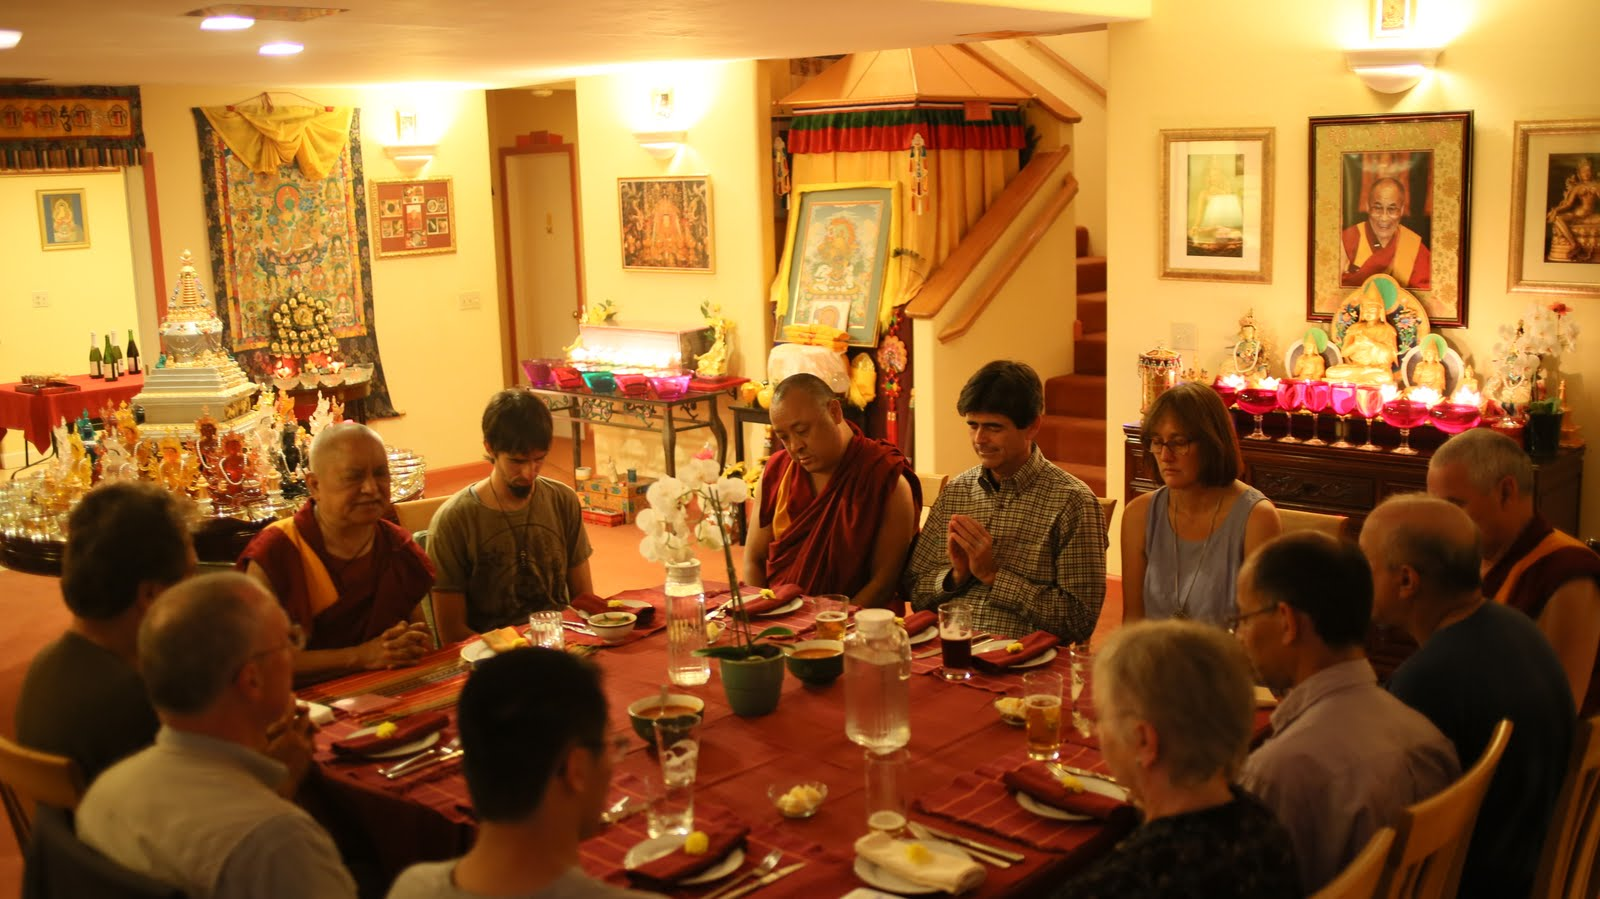 Rinpoche enjoying a meal with the FPMT Board of Directors and guests. September, 2013. Aptos, California. Photo by Ven. Thubten Kunsang.